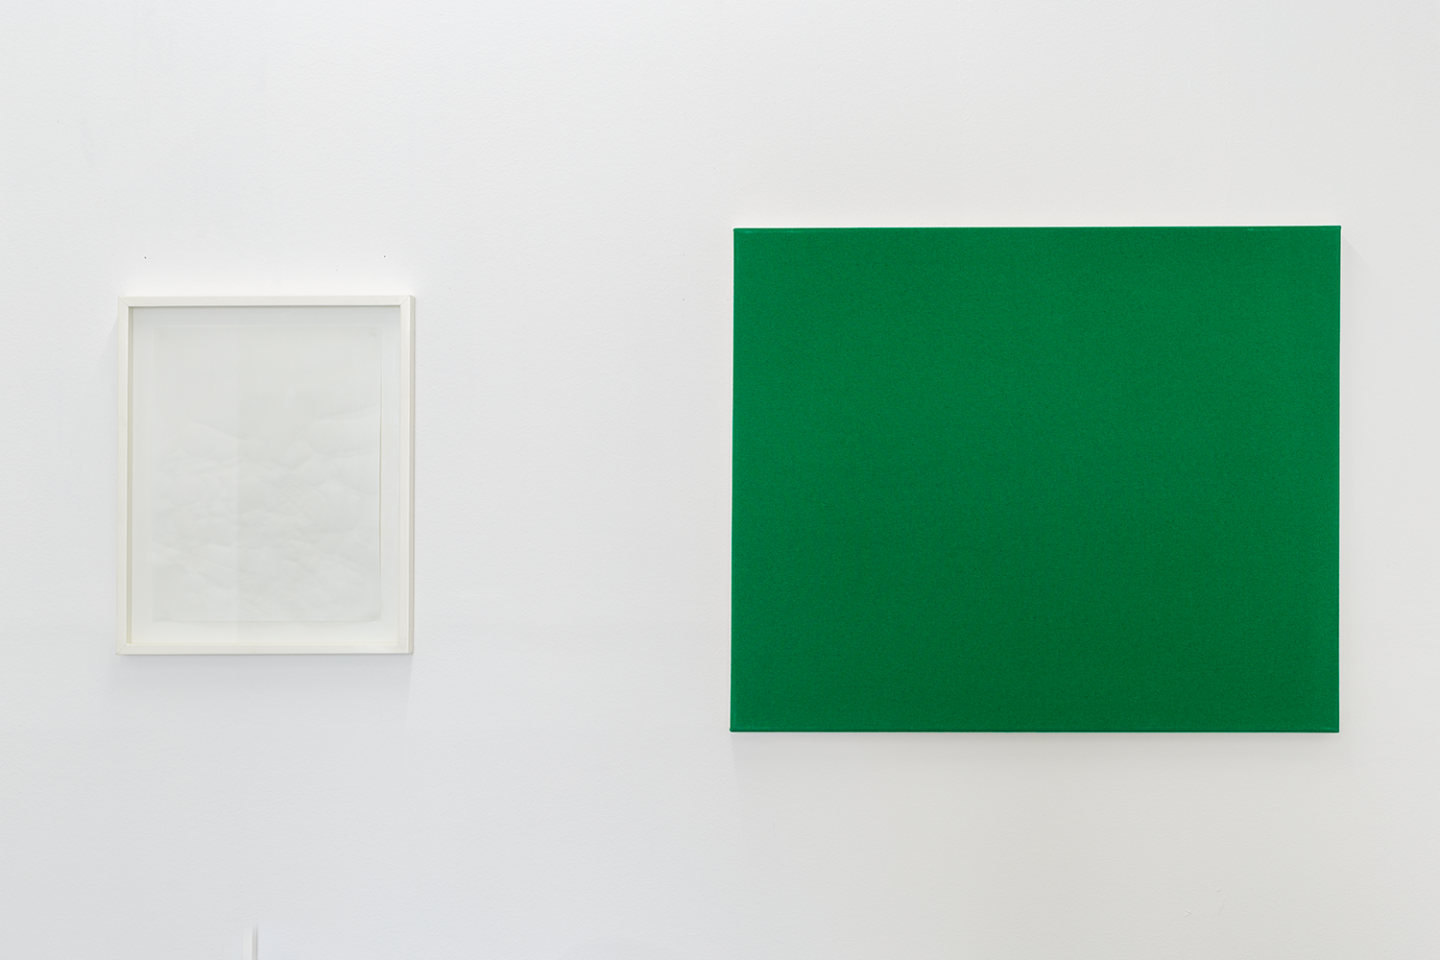 Installation View Groupshow «Double Take / view on Bruno Jakob, Philosophy Escaped (Invisible Painting), The Mutilated Meaning, 1999» at Last Tango Zurich, 2018 / Photography: Kilian Bannwart / Courtesy: the artists and Last Tango